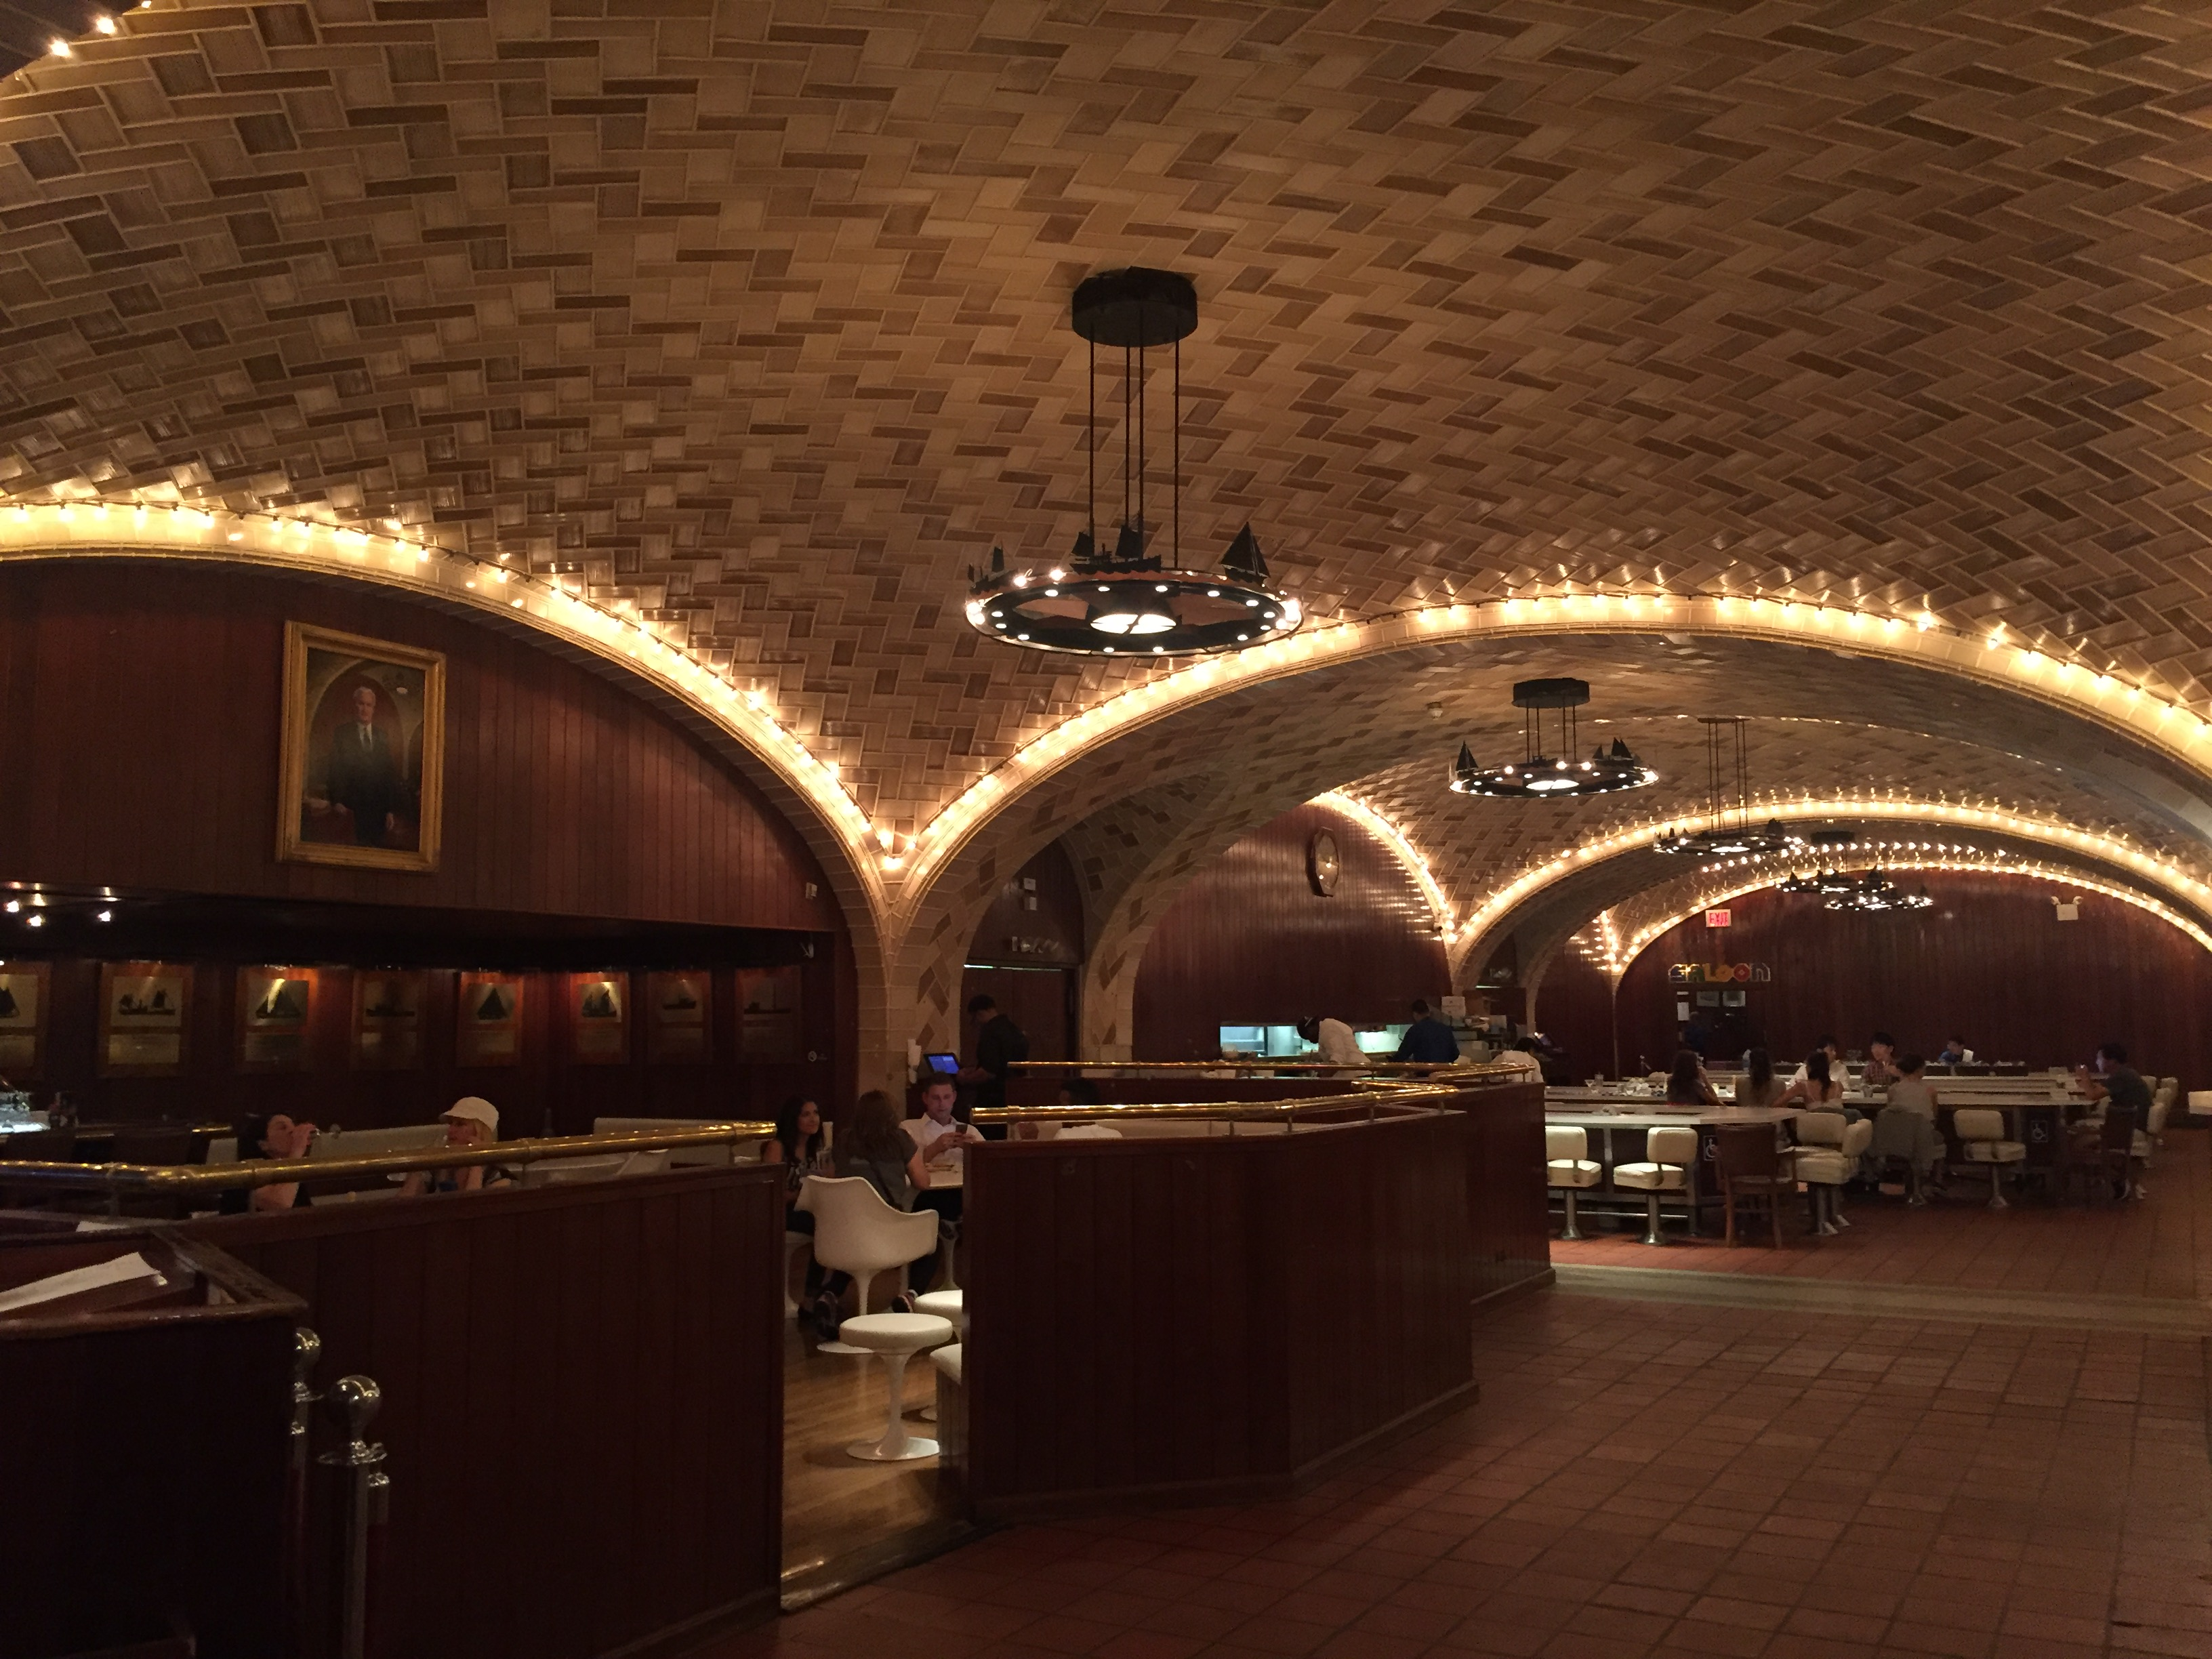 Oyster Bar with lights in arches in Grand Central Terminal